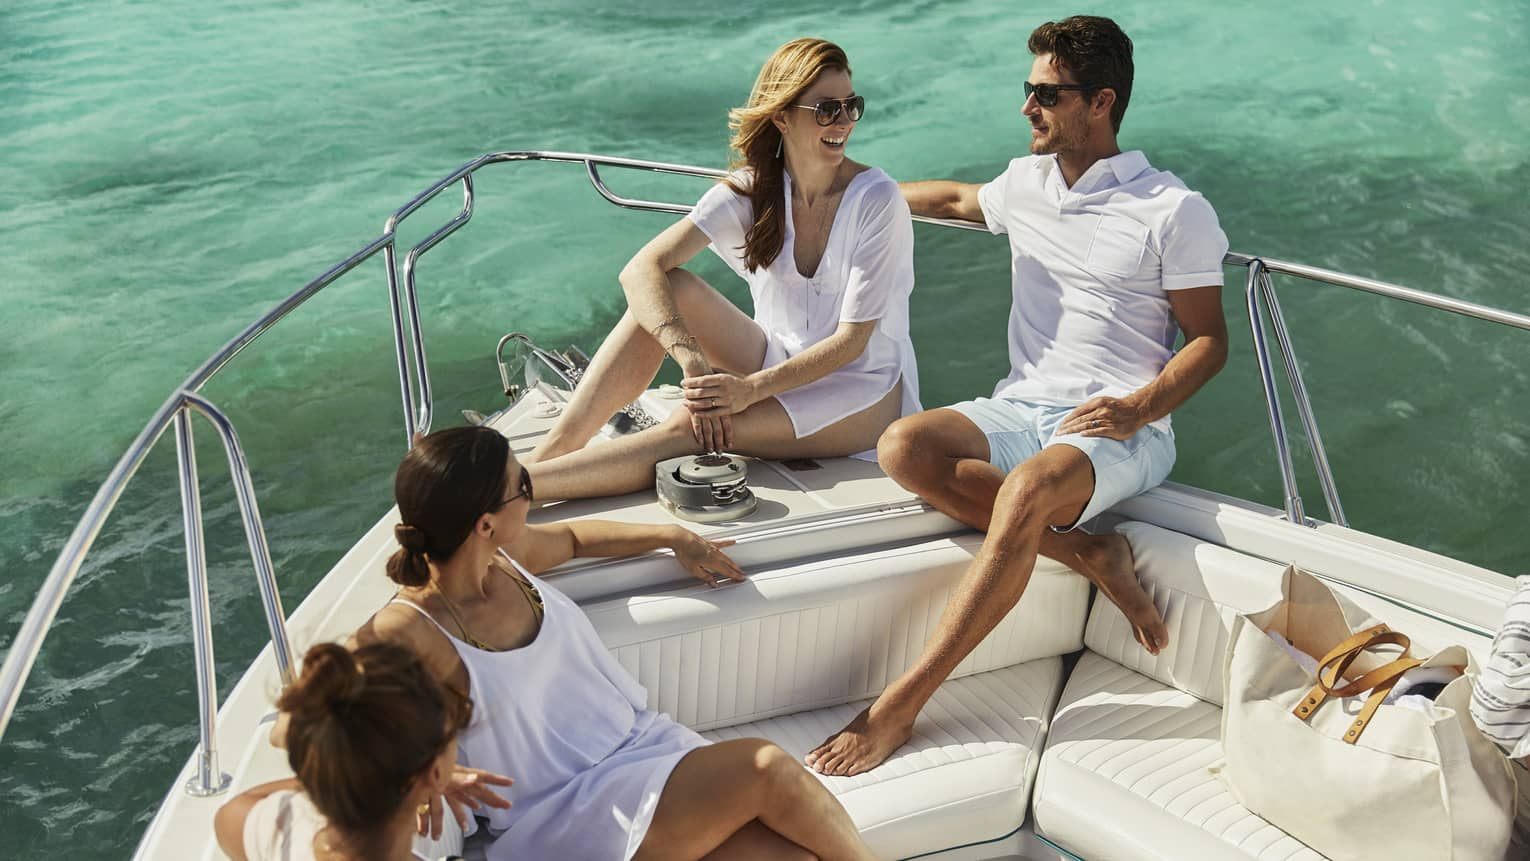 Man and woman wearing sunglasses sit on end of boat, talking to two women on bench